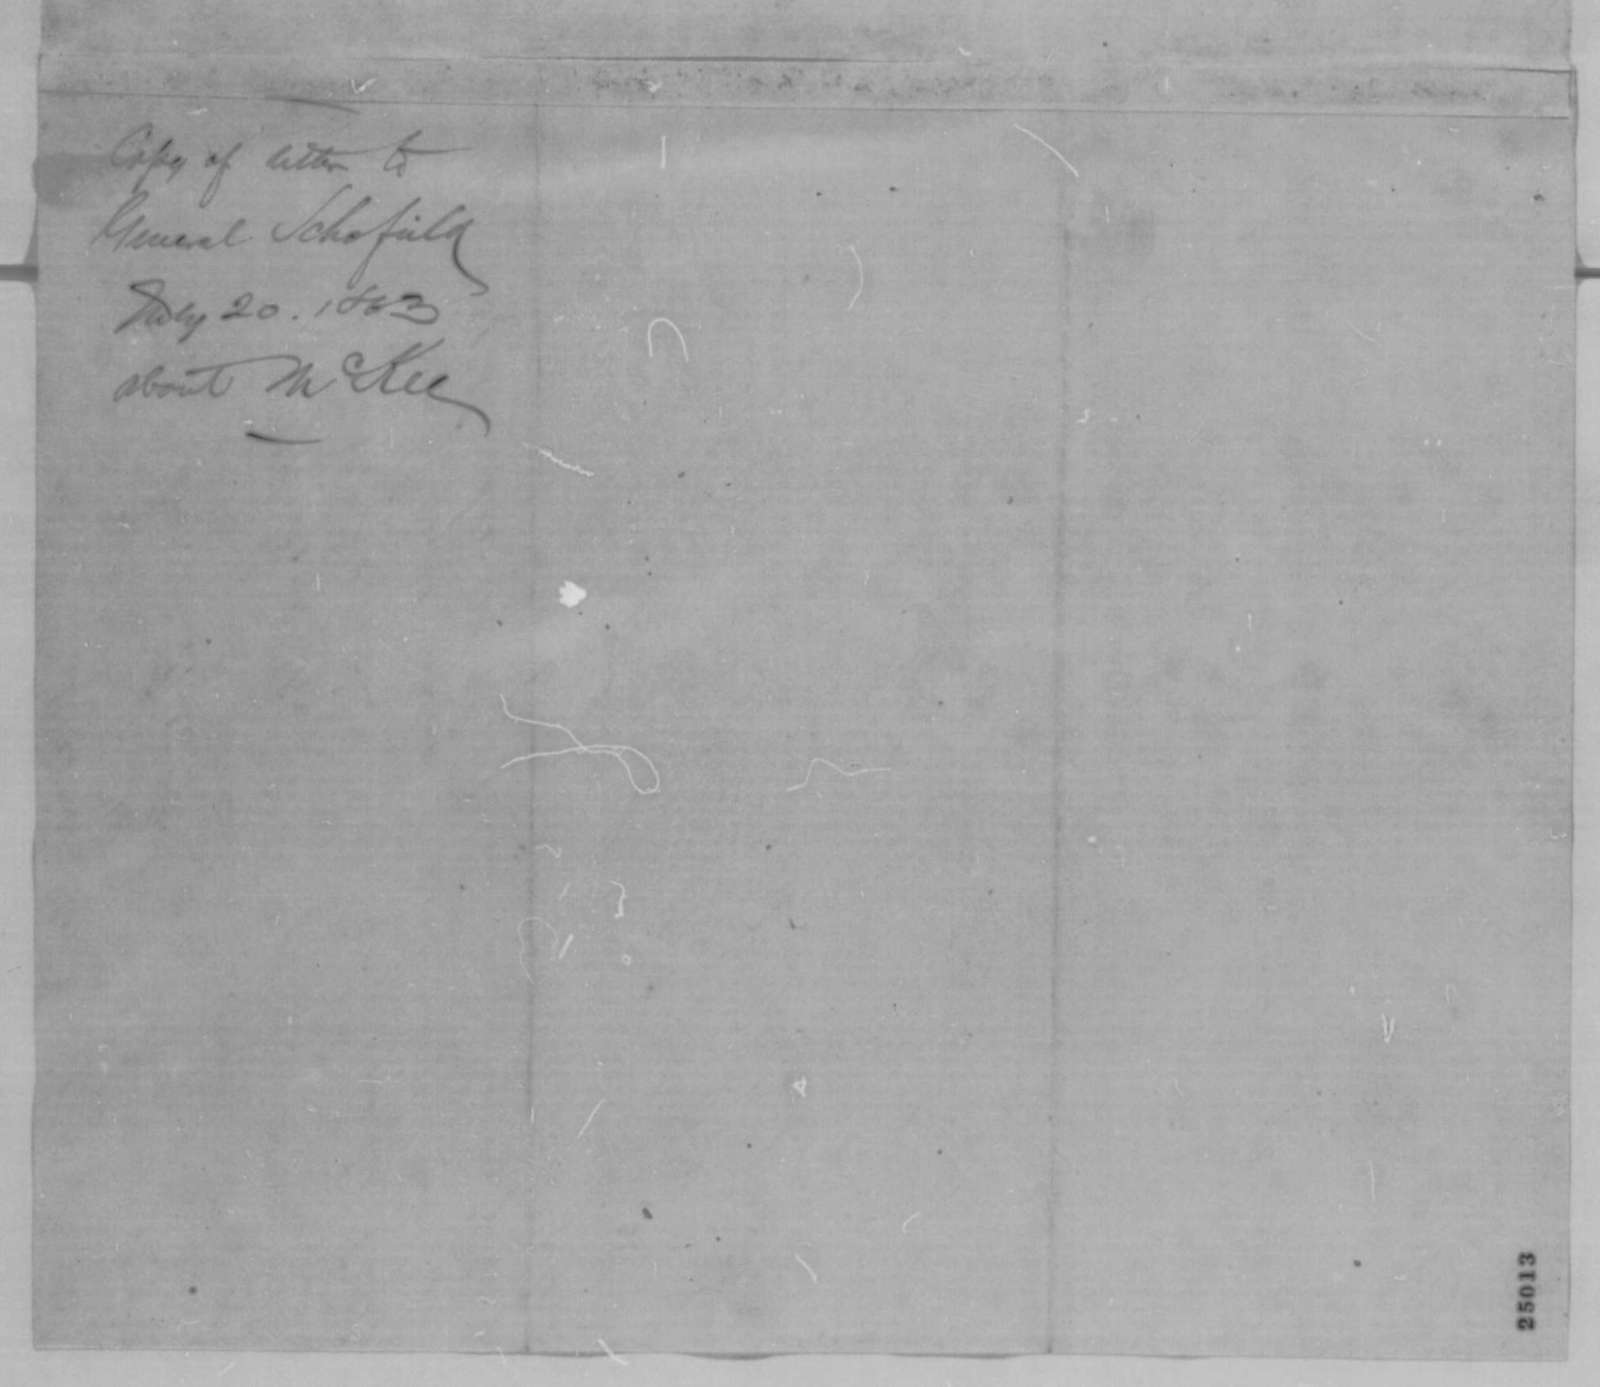 Abraham Lincoln to John M Schofield, Monday, July 20, 1863  (Arrest of William McKee)